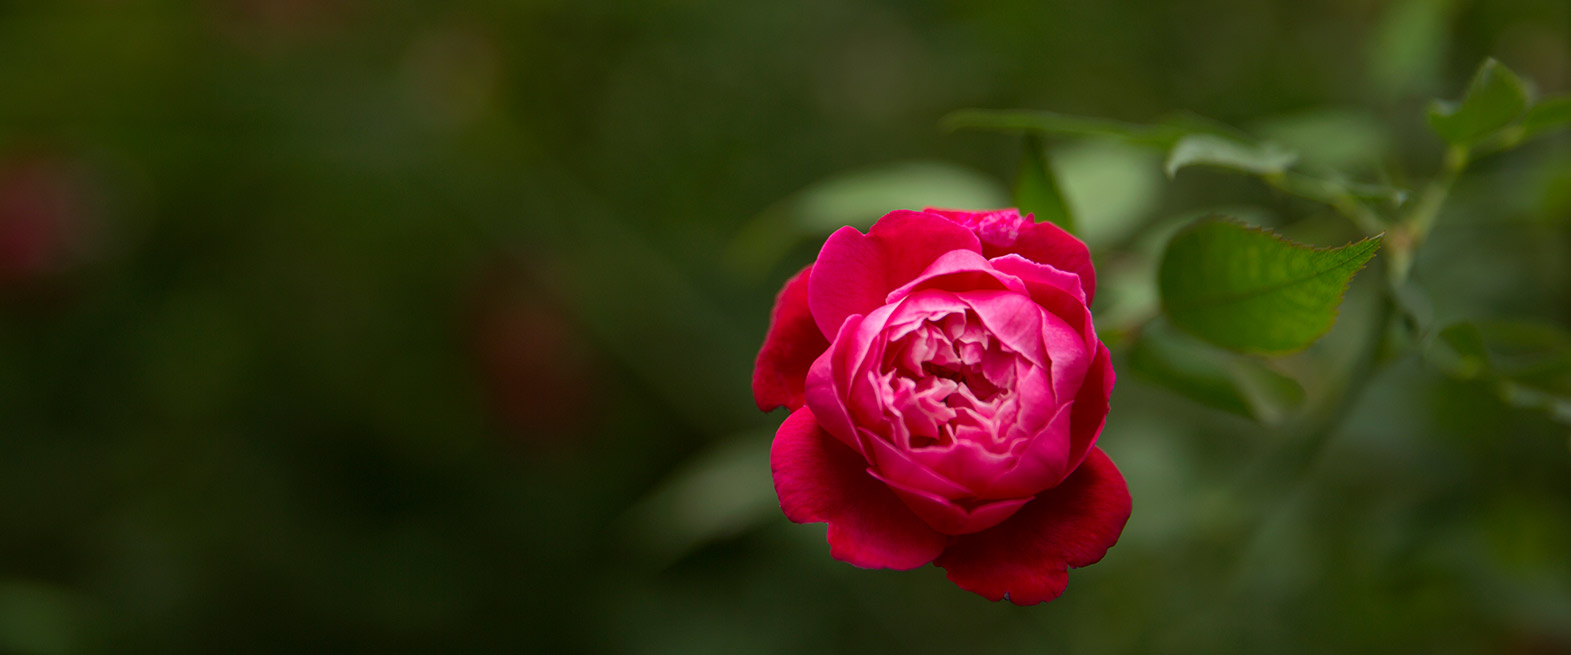 Rembrance-Gardens-Red-Rose.jpg